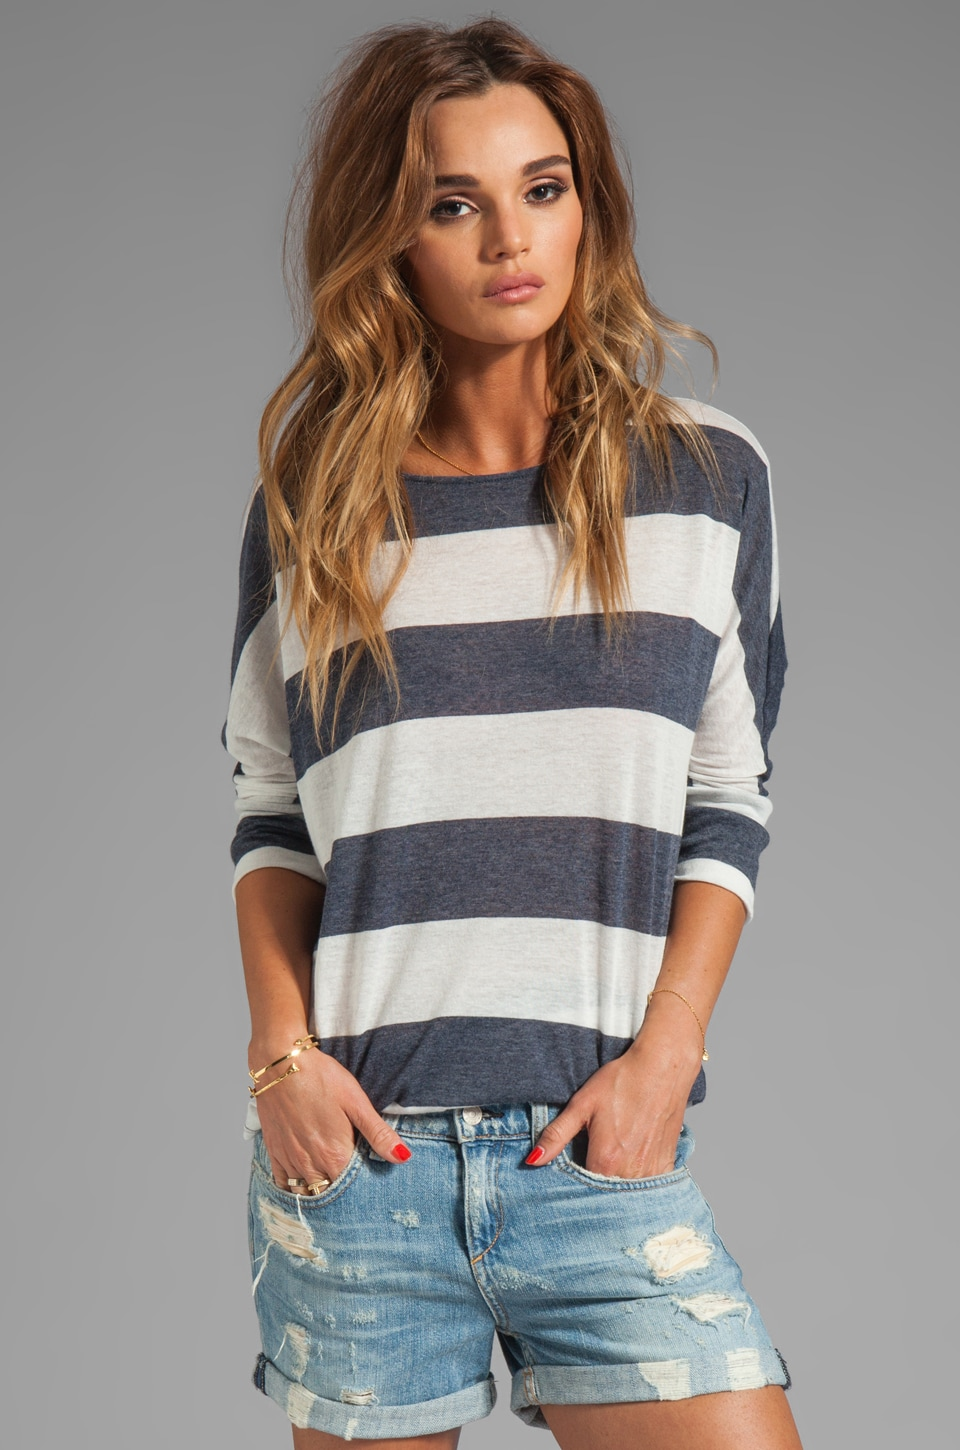 Soft Joie Sagittarius Stripe Top in Porcelain/Peacoat